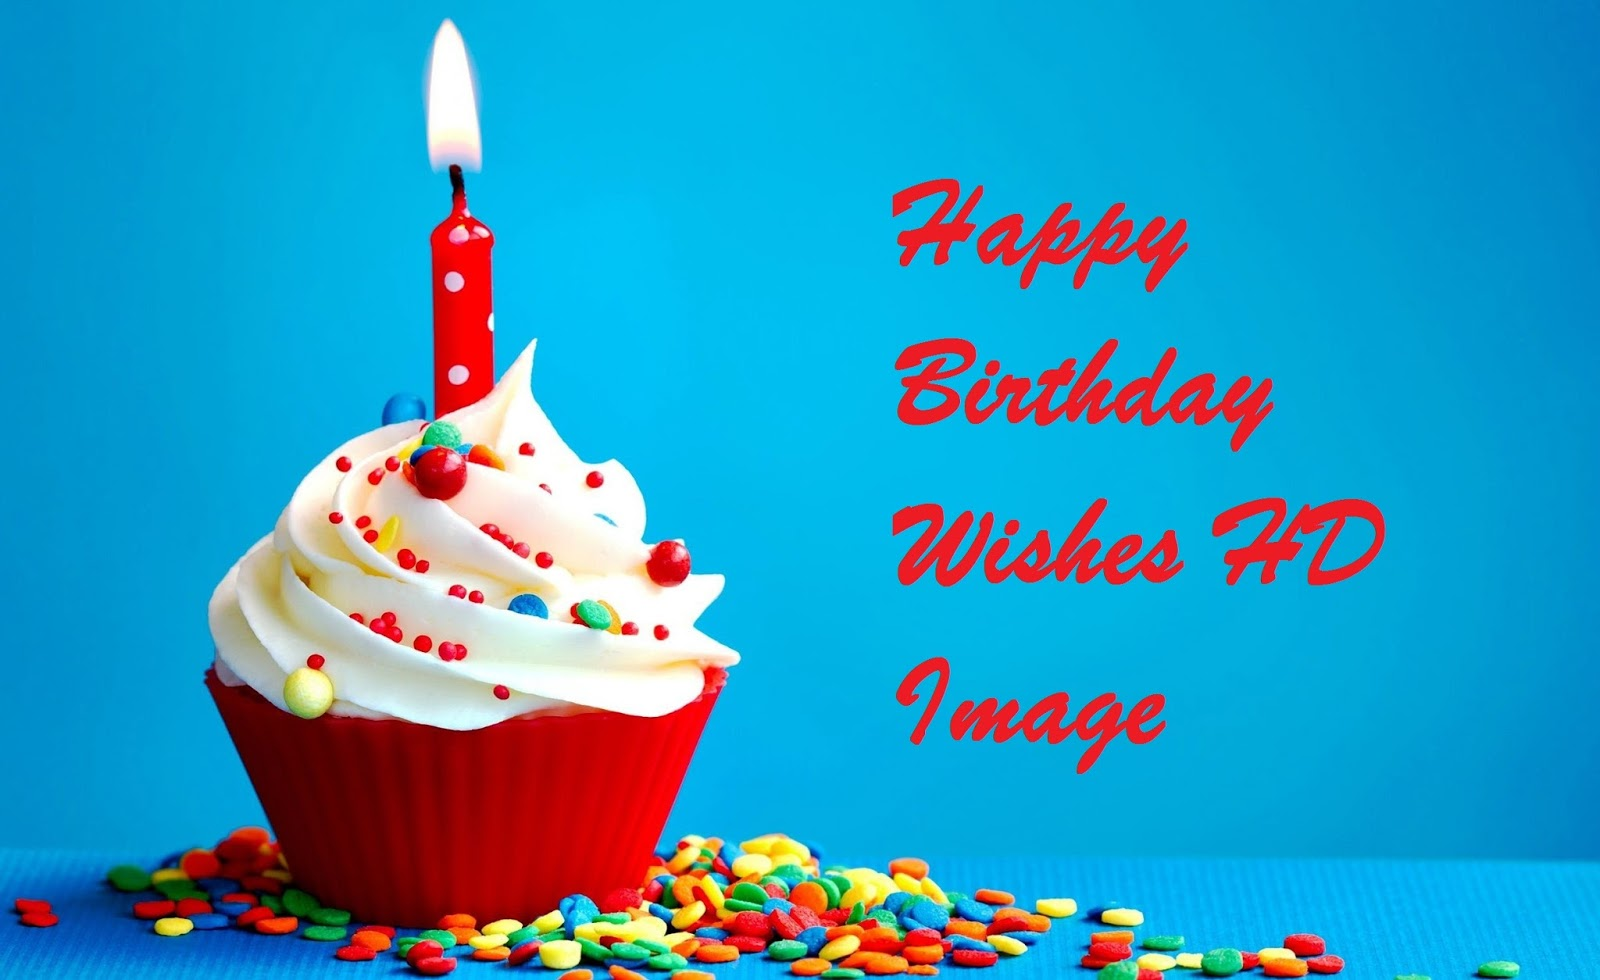 birthday images hd wallpaper ; happy-birthday-wishes-hd-images